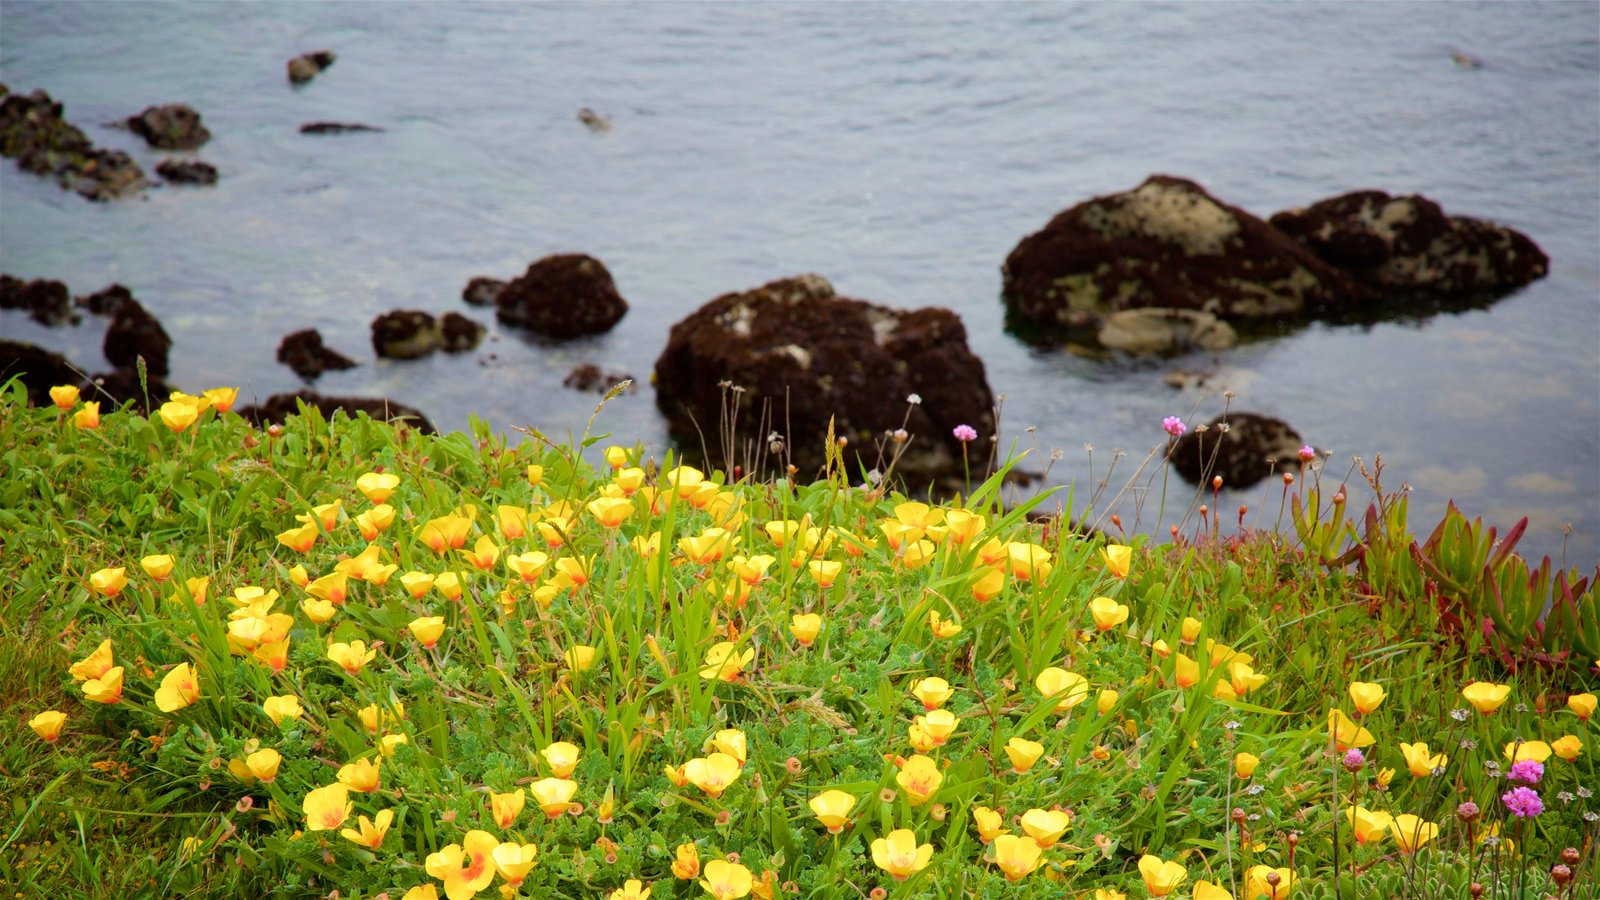 Mendocino Coast Botanical Gardens Which Includes General Coastal Views And  Wildflowers